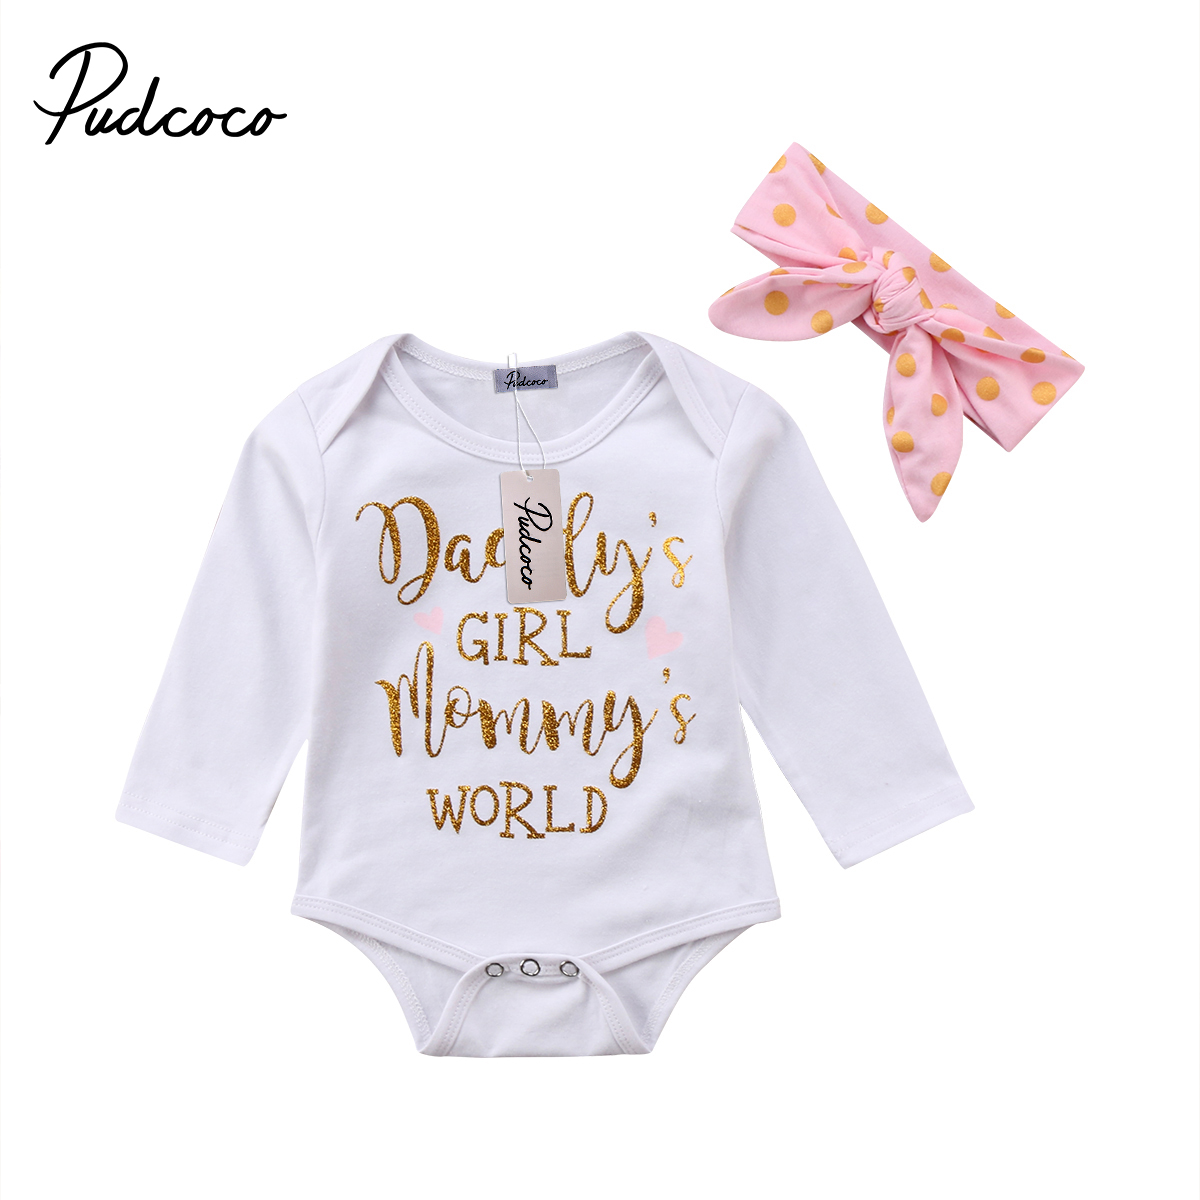 Cute Baby Clothing Infant Newborn Baby Girl Cotton Long sleeve Romper Jumpsuit Baby Girls Outfit Set Clothes 0-2T